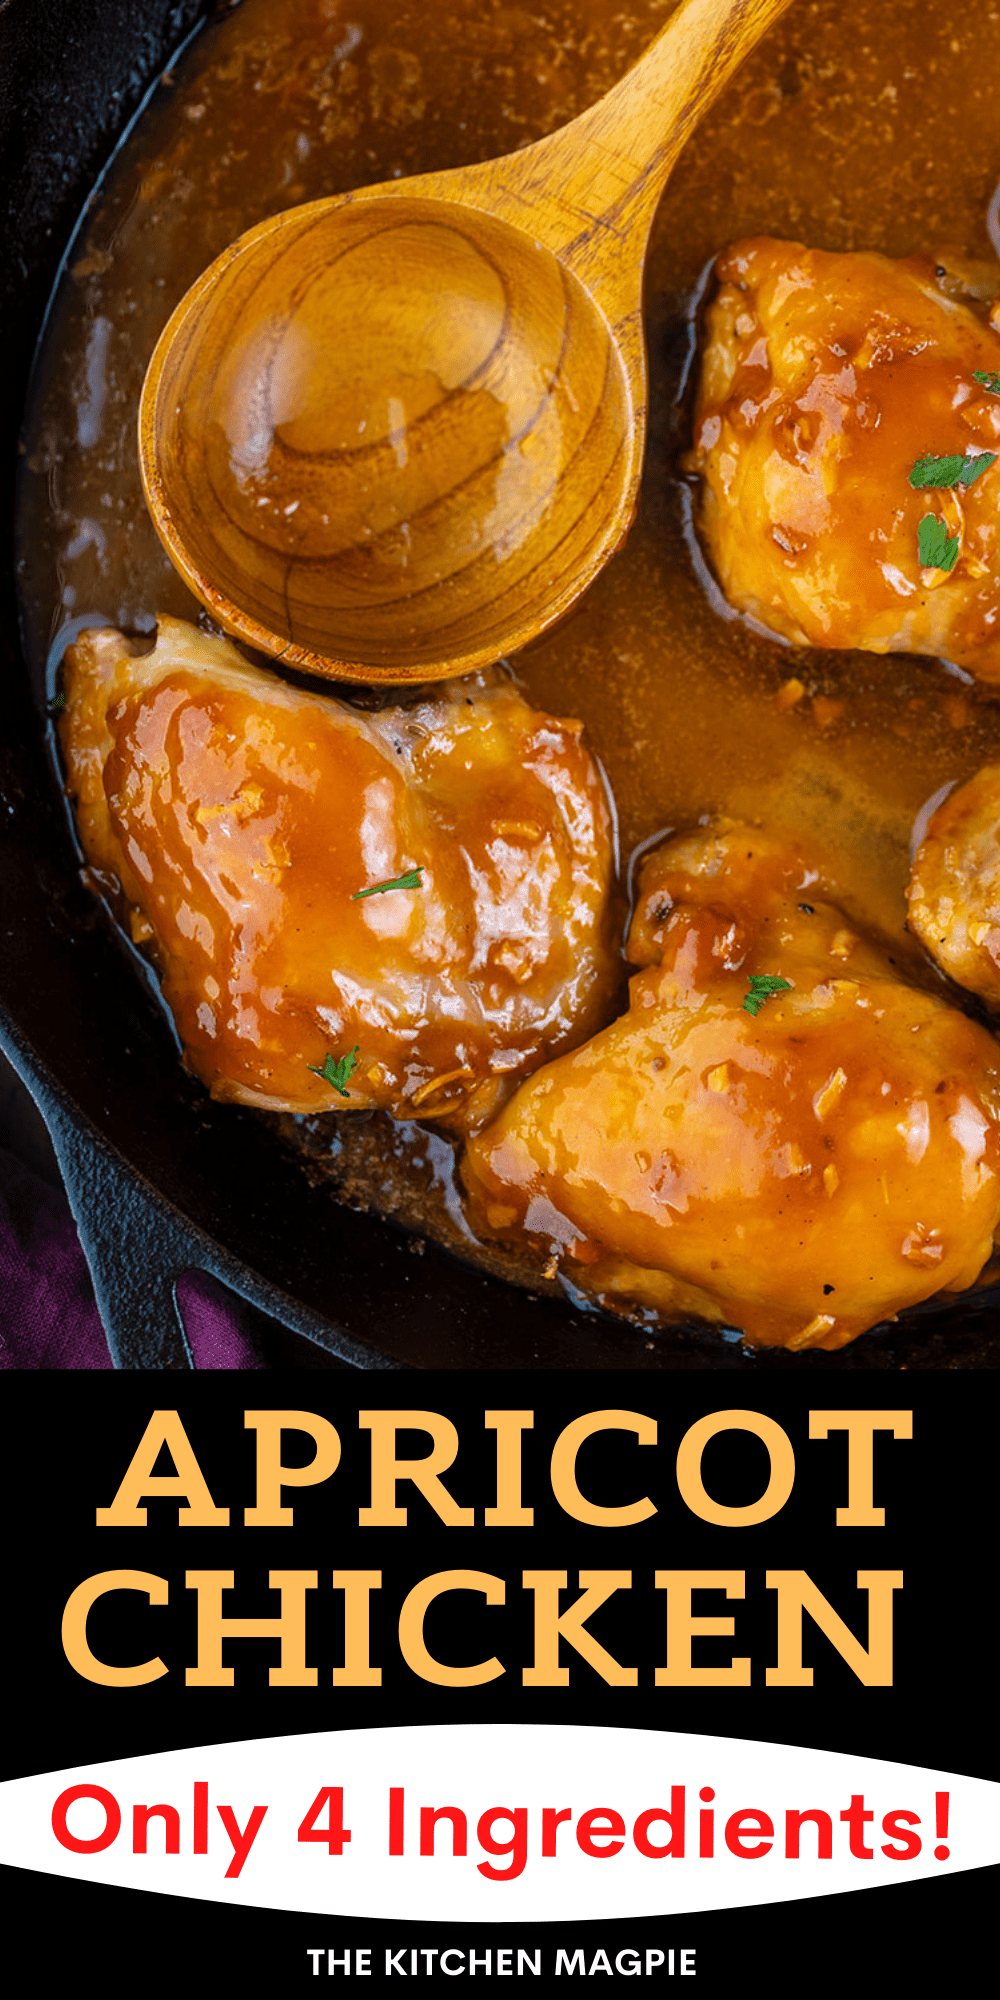 This classic apricot chicken is only 4 ingredients - apricot jam, onion soup mix, chicken, and French dressing. Sweet, sticky, and incredibly retro, you can't help but be won over by this simple apricot chicken recipe!